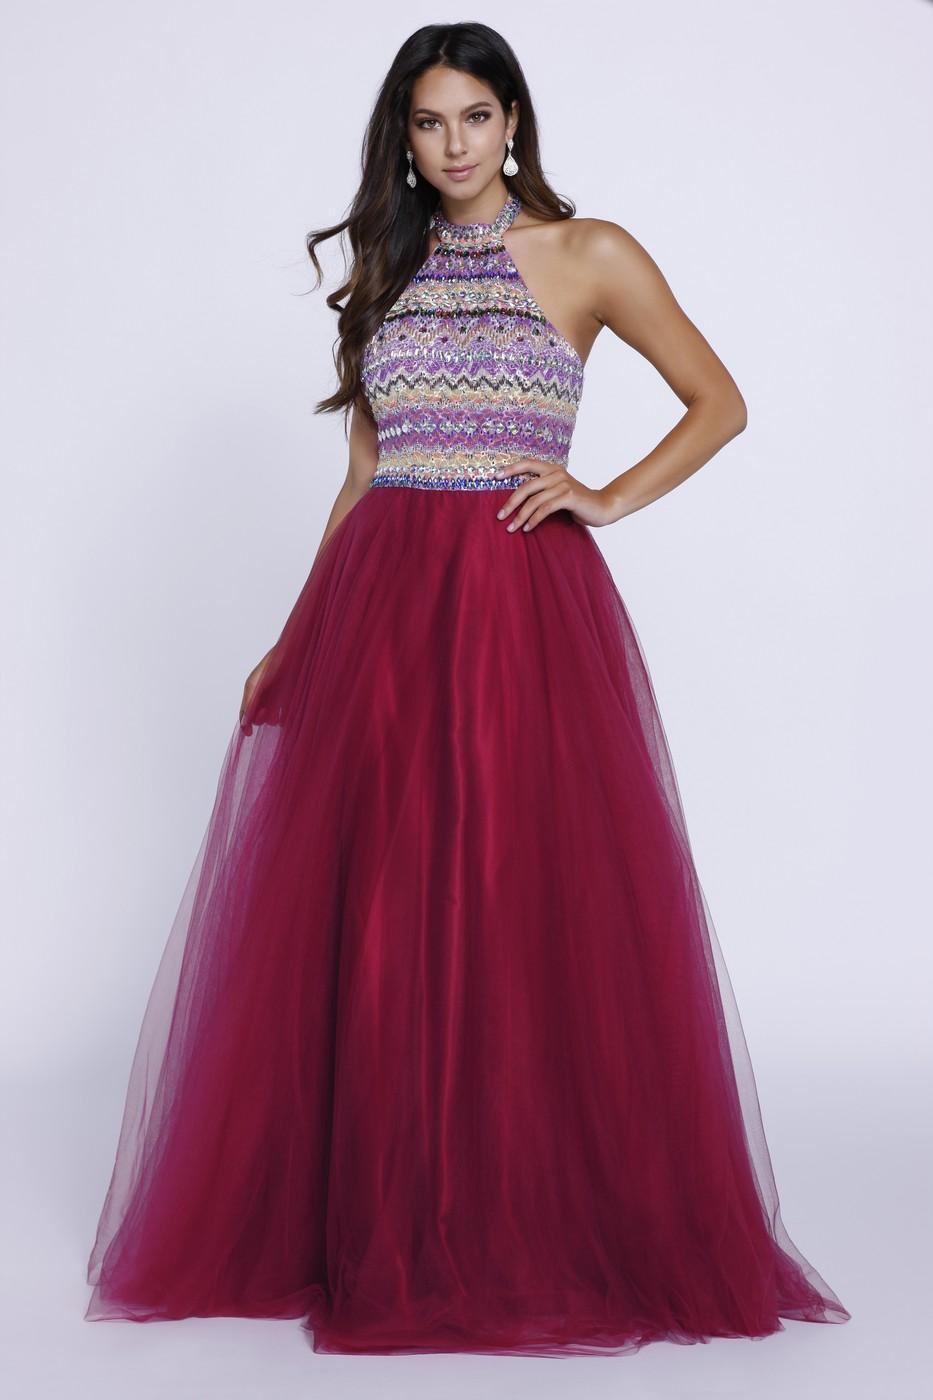 Halter Top Dress w/ Beaded Top | Prom Dresses | Barbara\'s Boutique